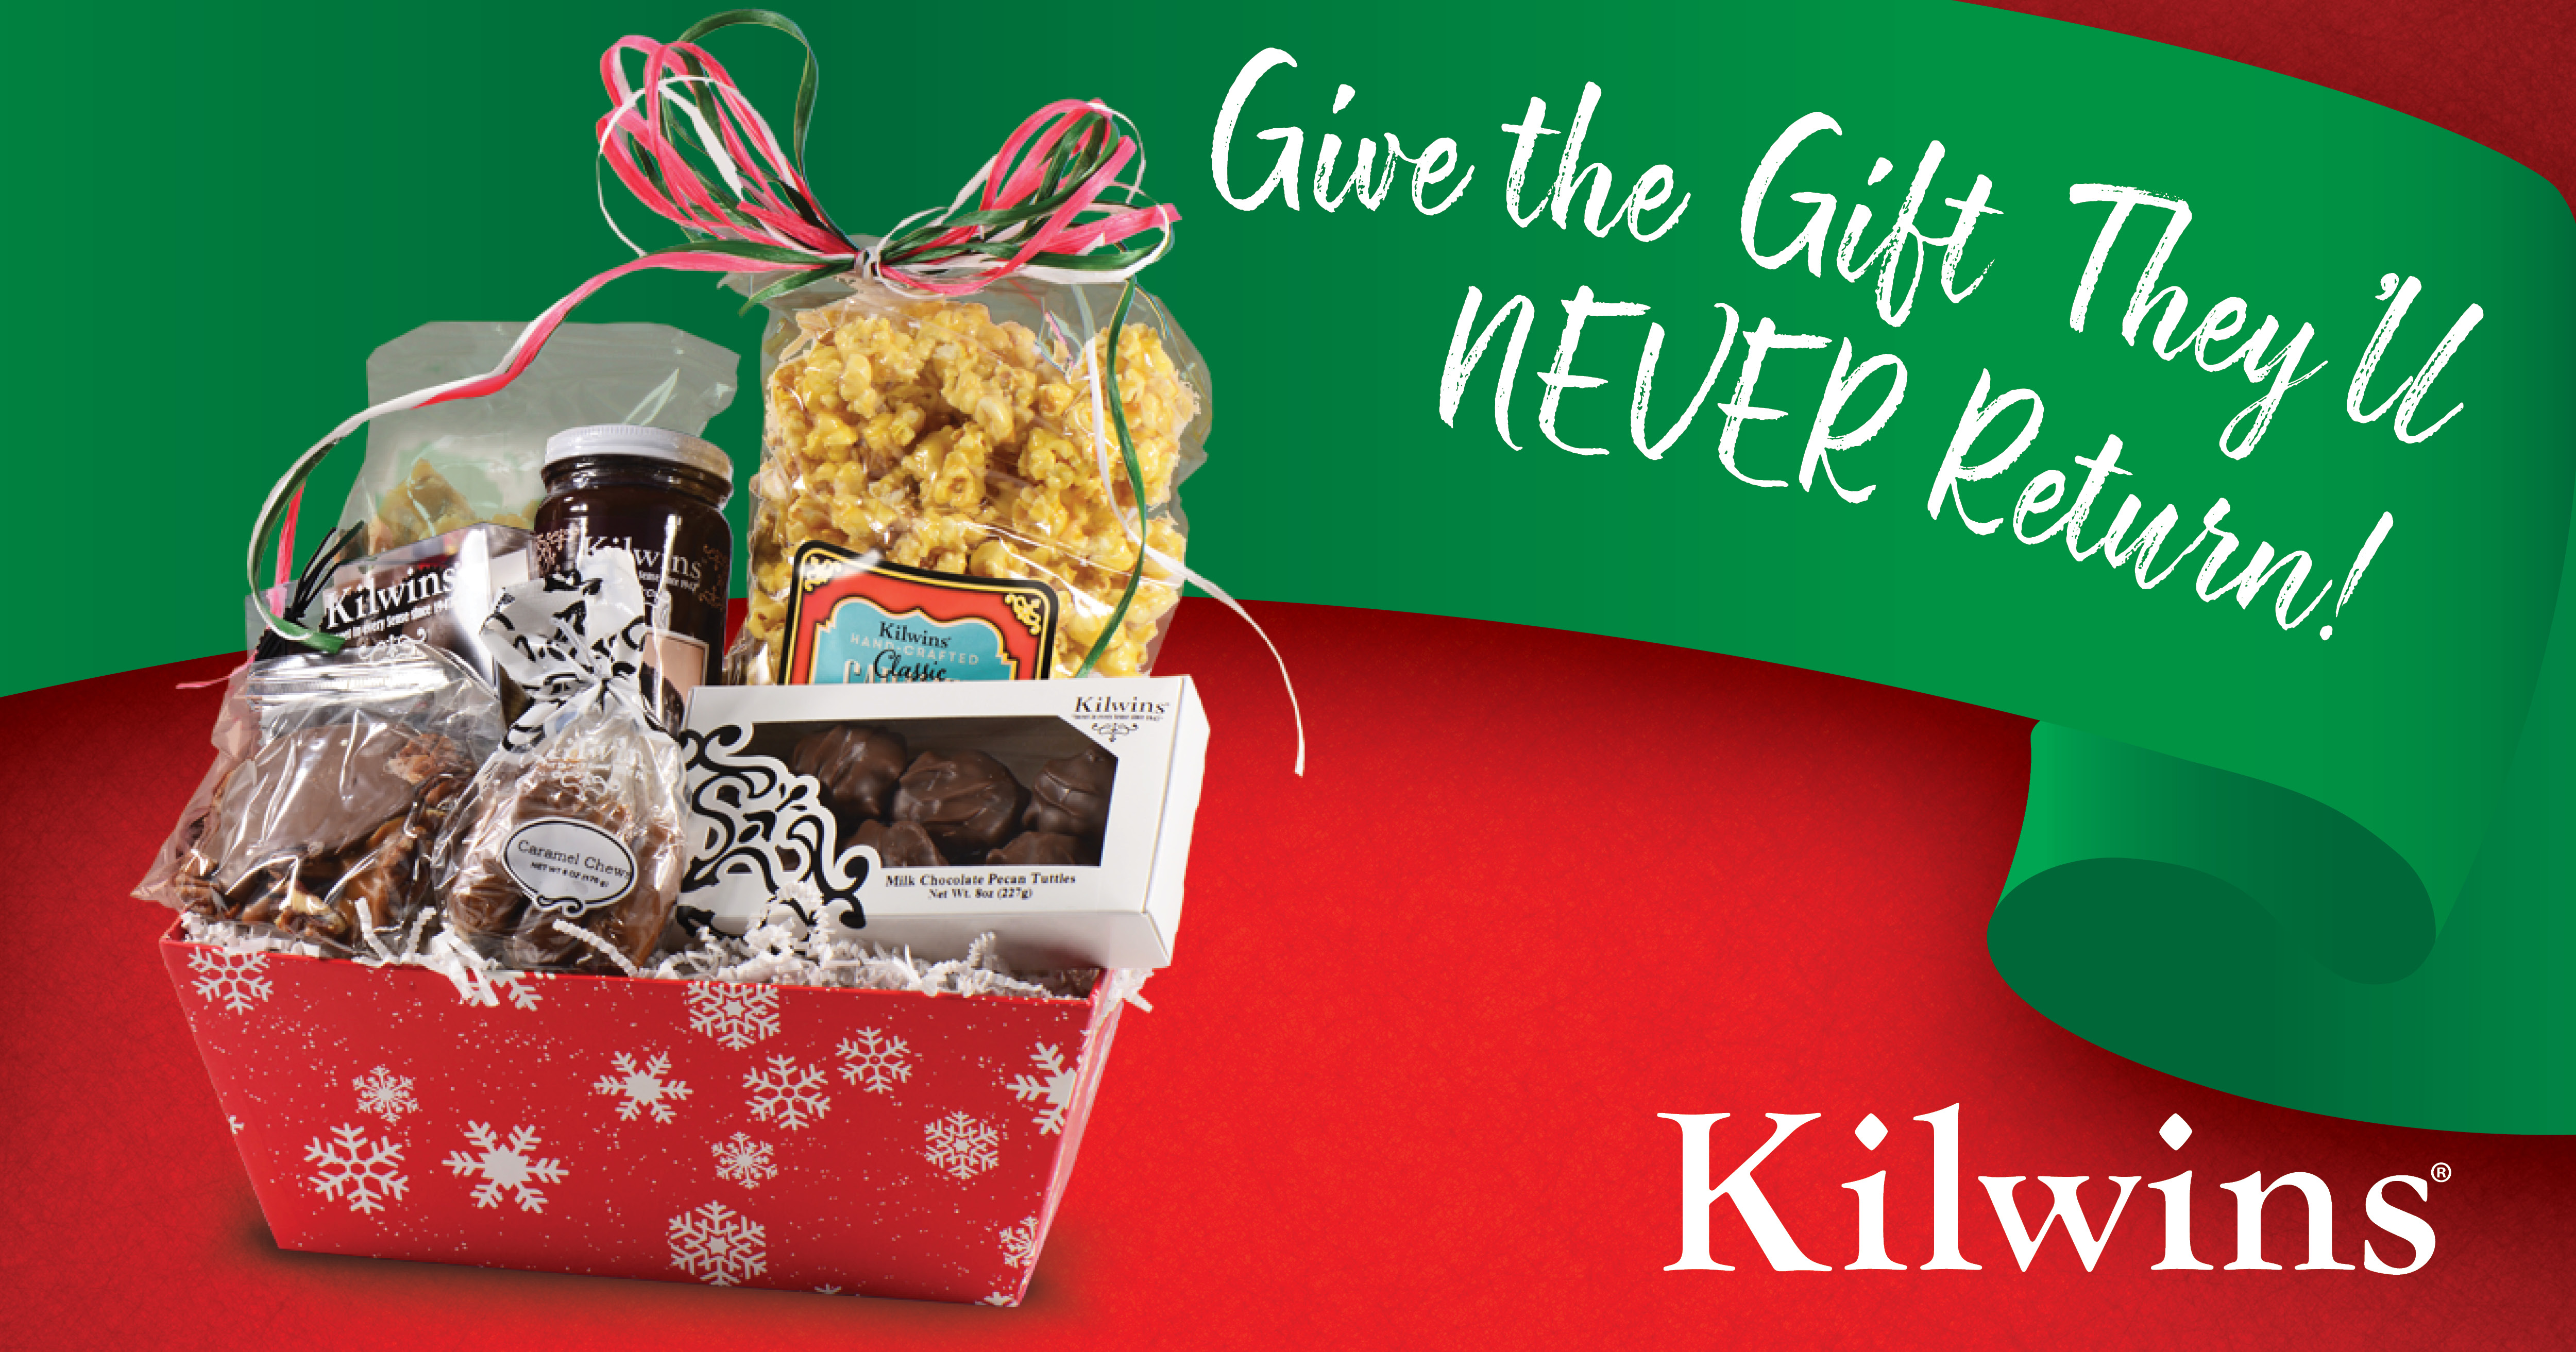 """Kilwins Gift Basket with the text, """"The Gift They'll NEVER Return!"""""""